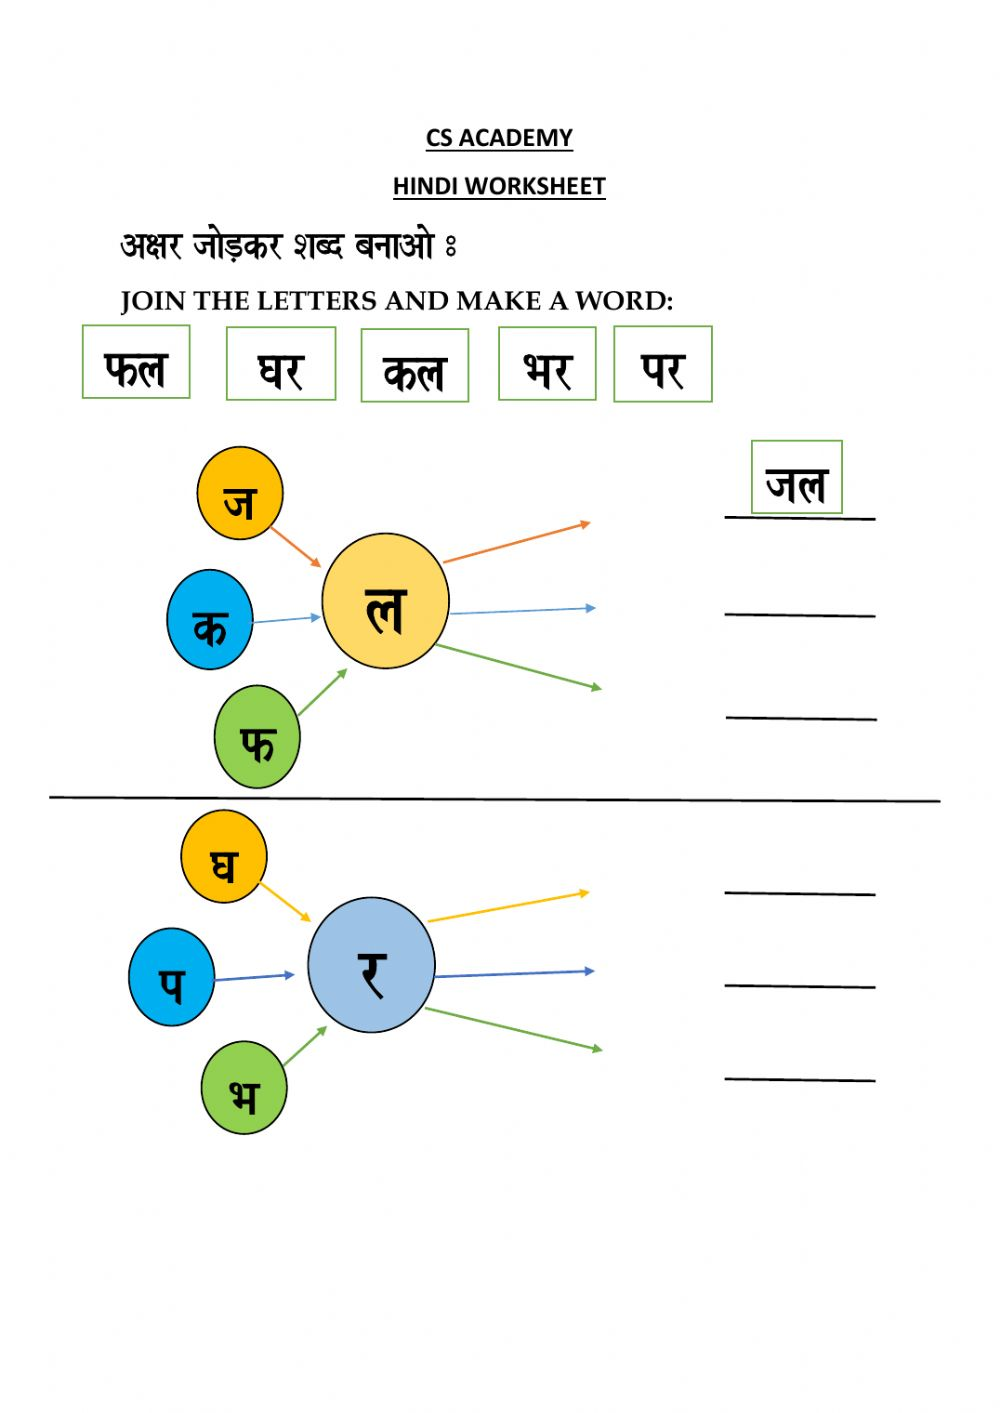 Join The Letters And Make A Word Worksheet